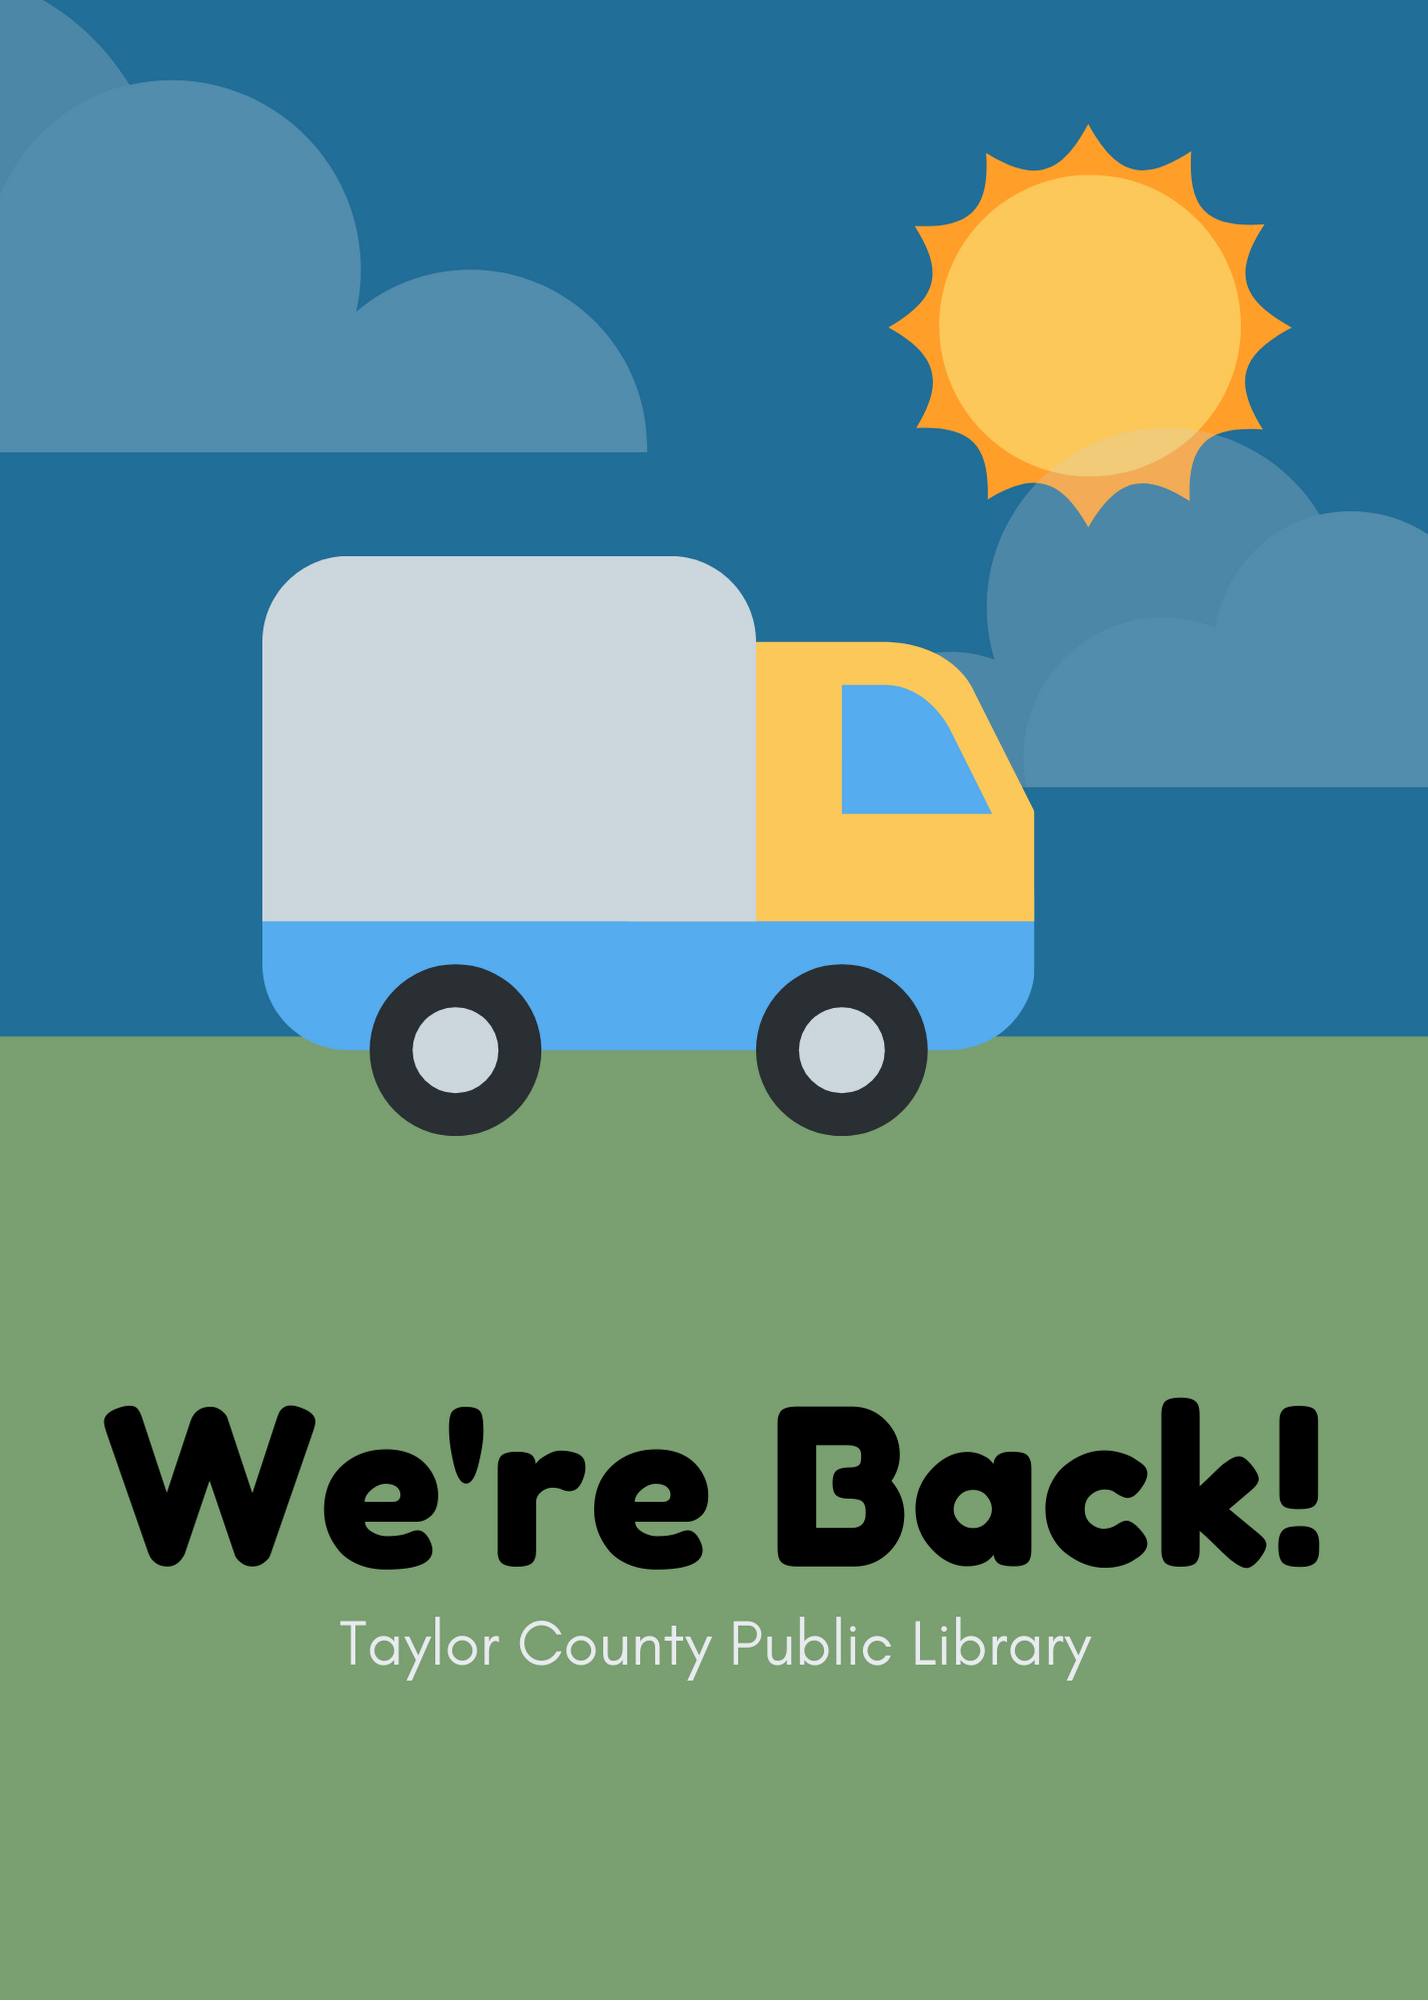 The Bookmobile is Back!